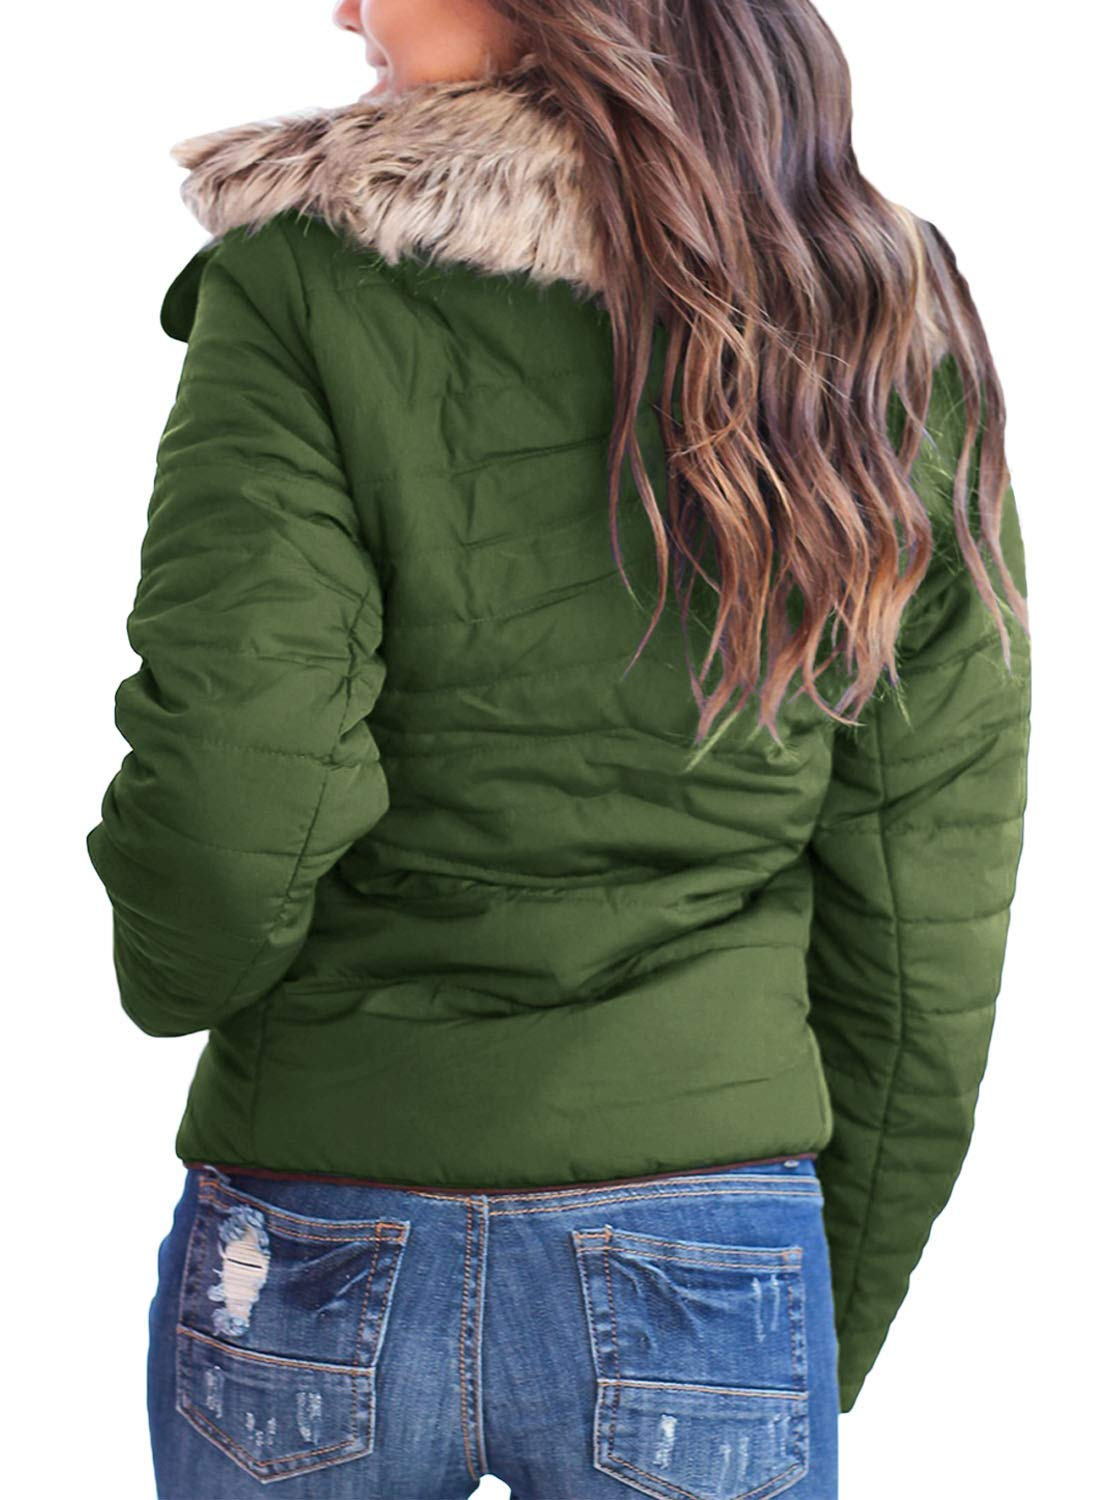 Women's Casual Quilted Parka Jacket Puffer Coat 4